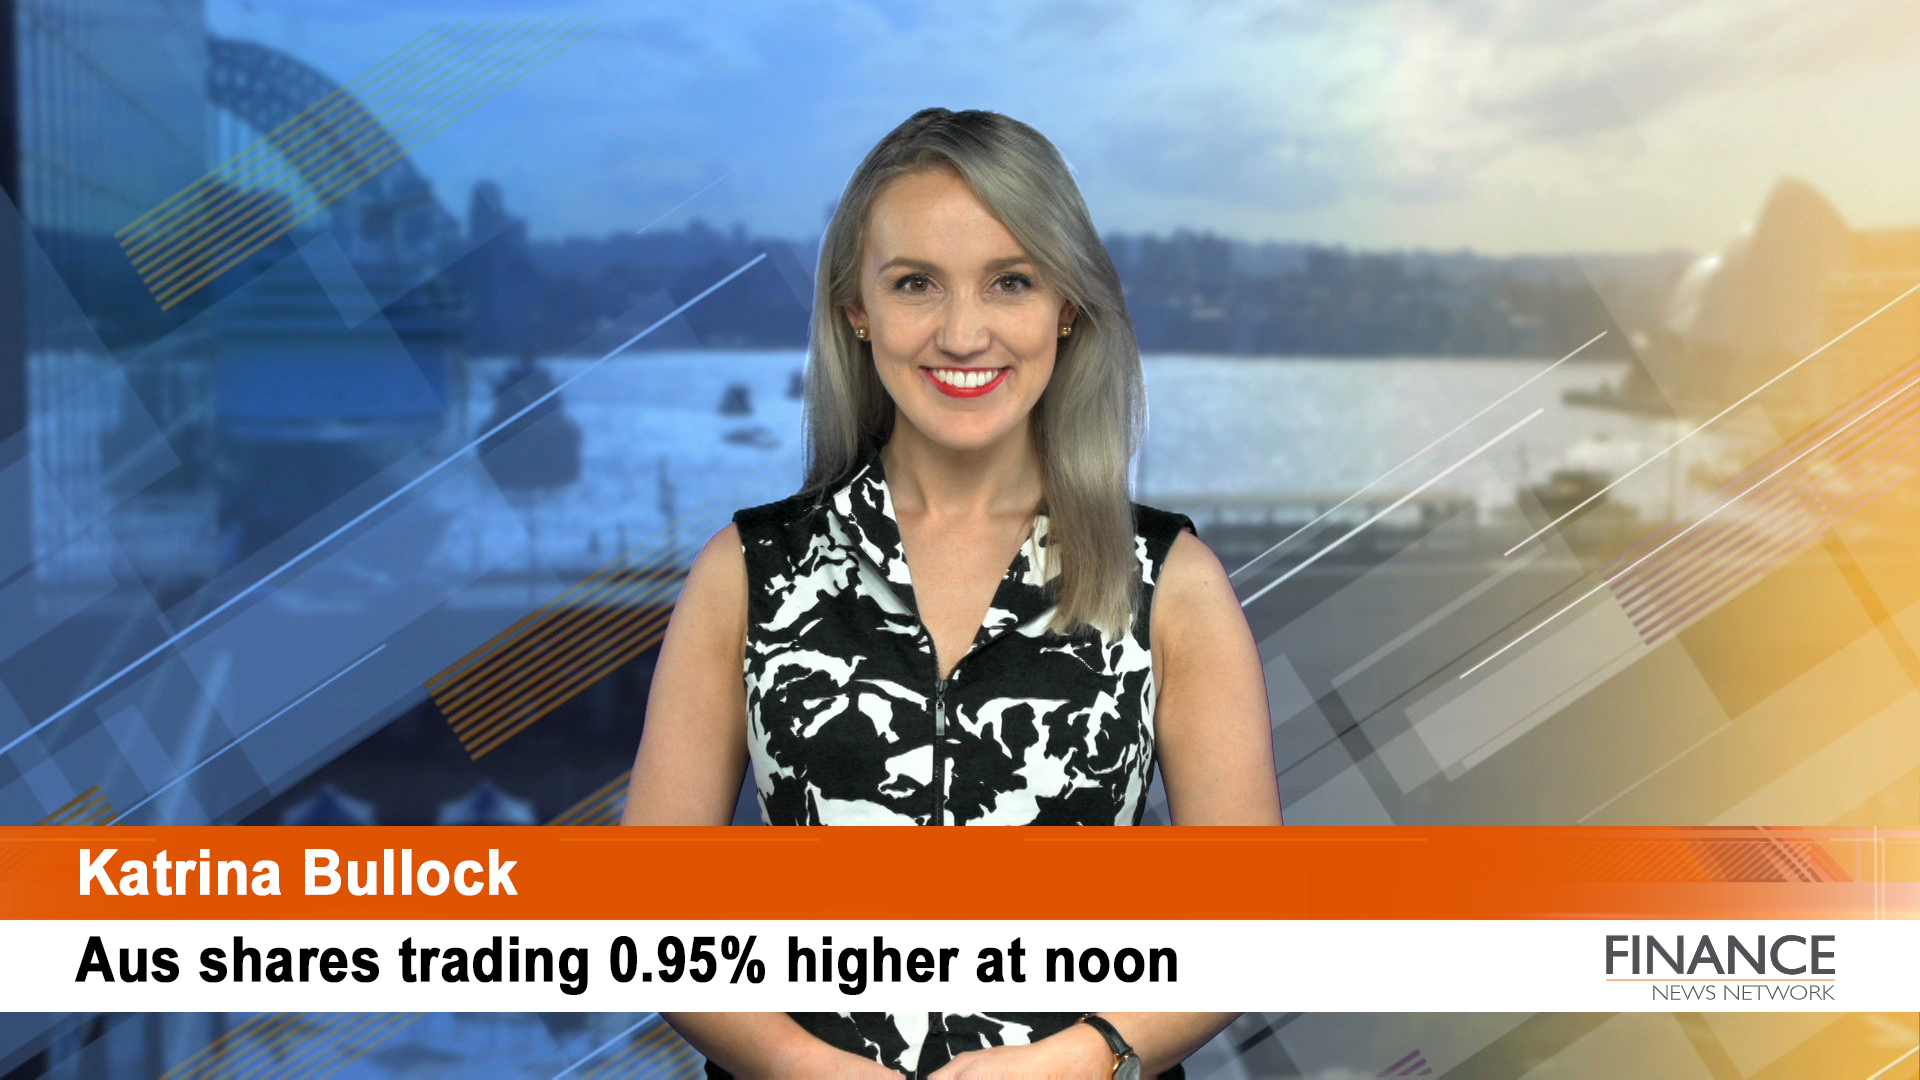 Megaport (ASX:MP1) to raise $62 million: Aus shares nearly 1% higher at noon